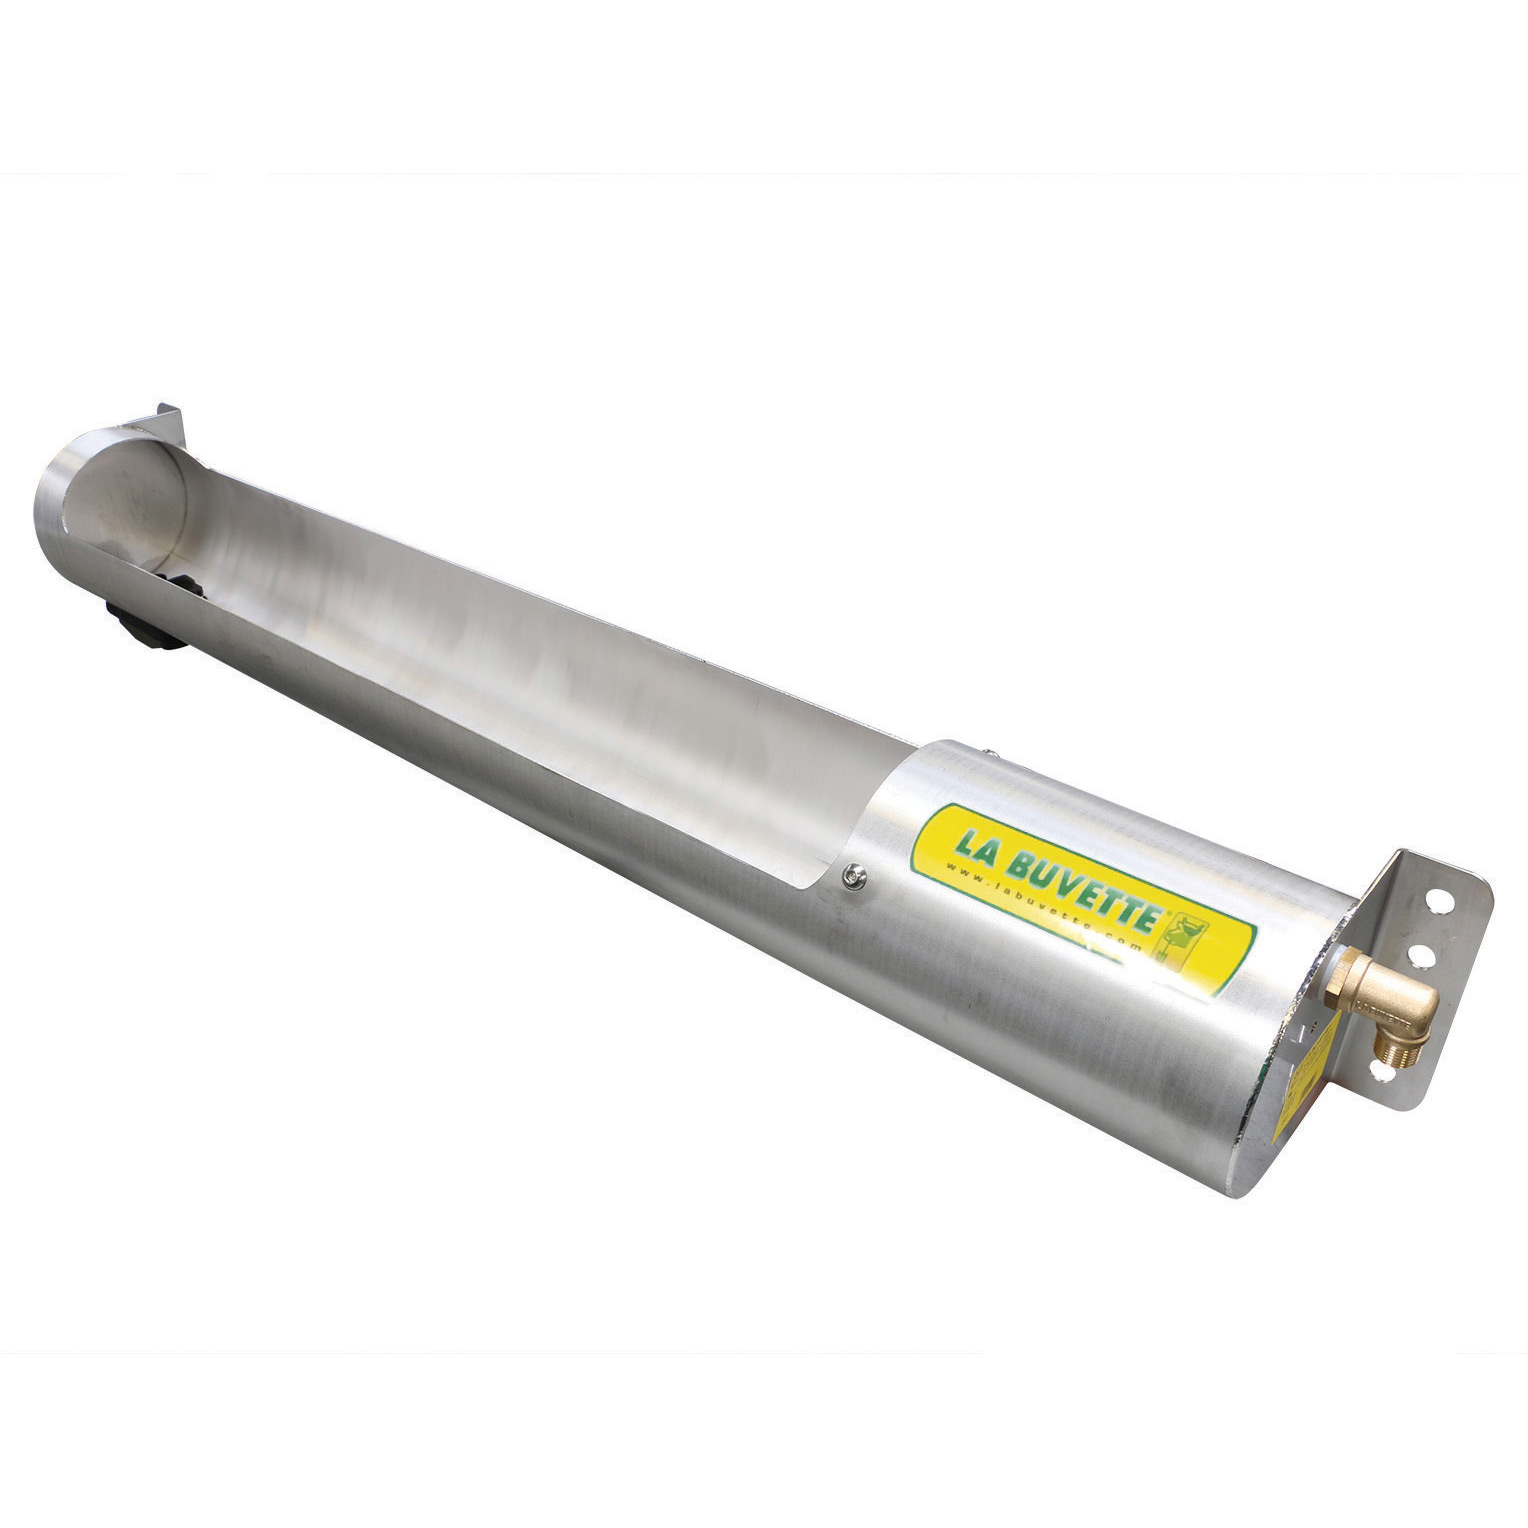 OVITUBE 120 Stainless Steel DRINKING TROUGH